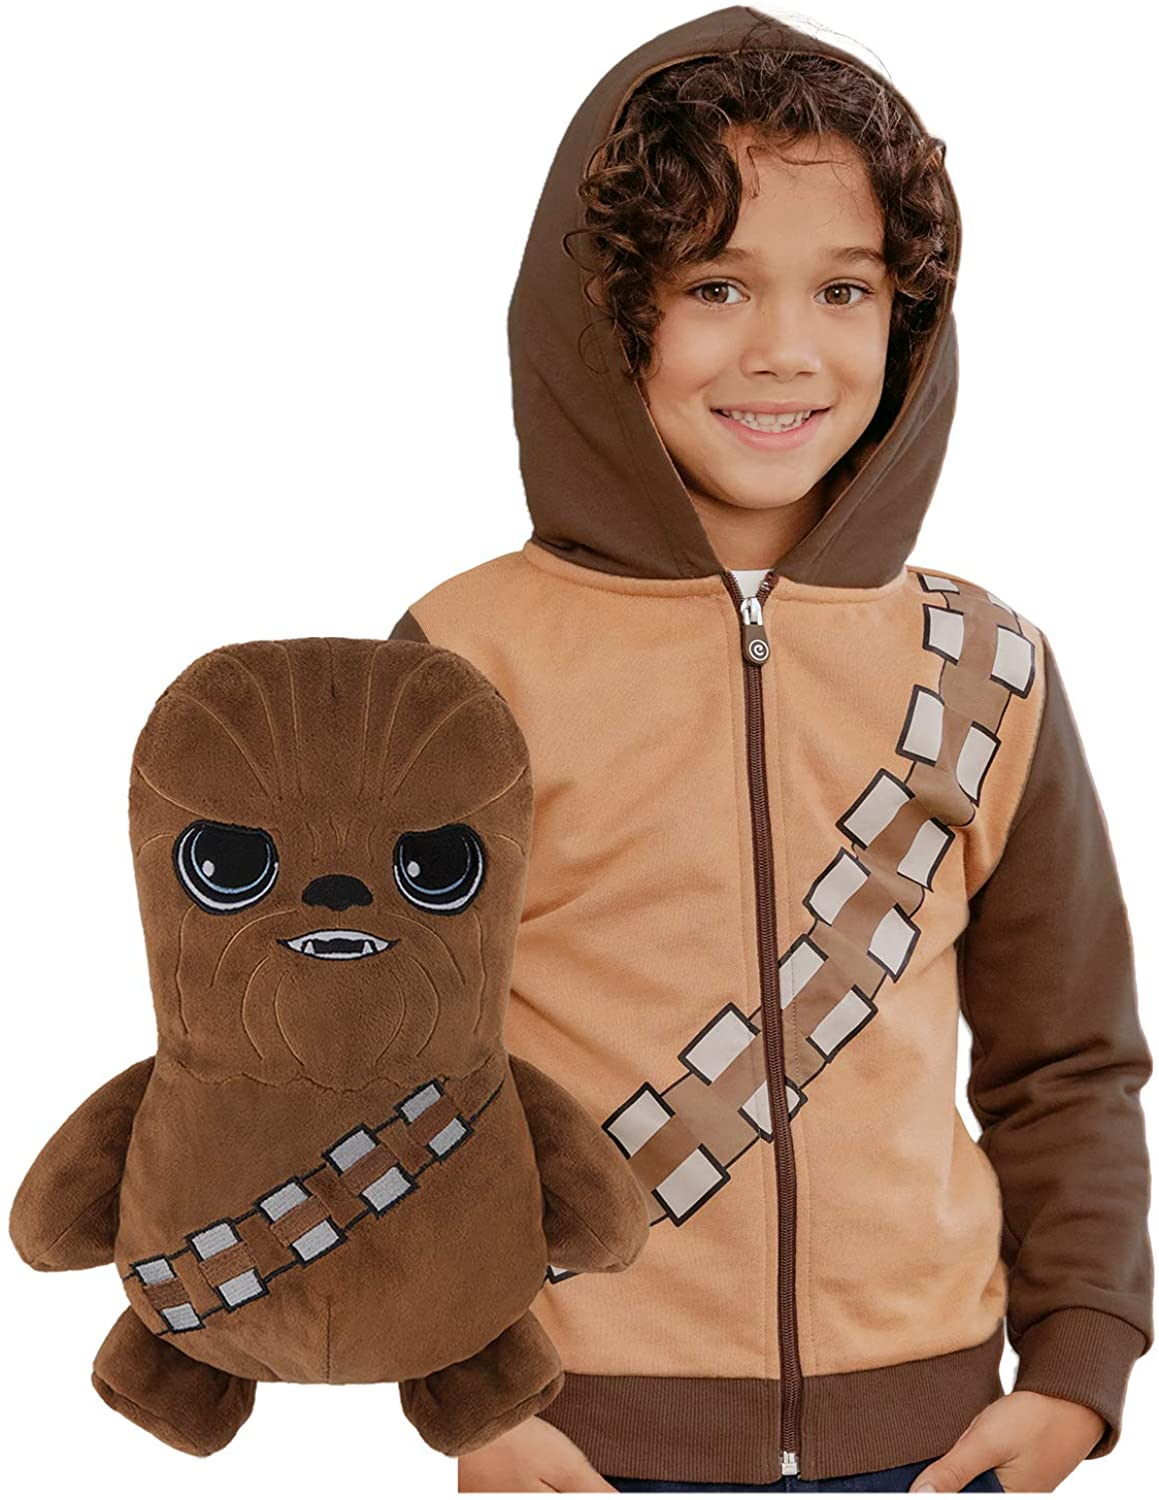 Star Wars Chewbacca Hoodie and Soft Plushie For Kids